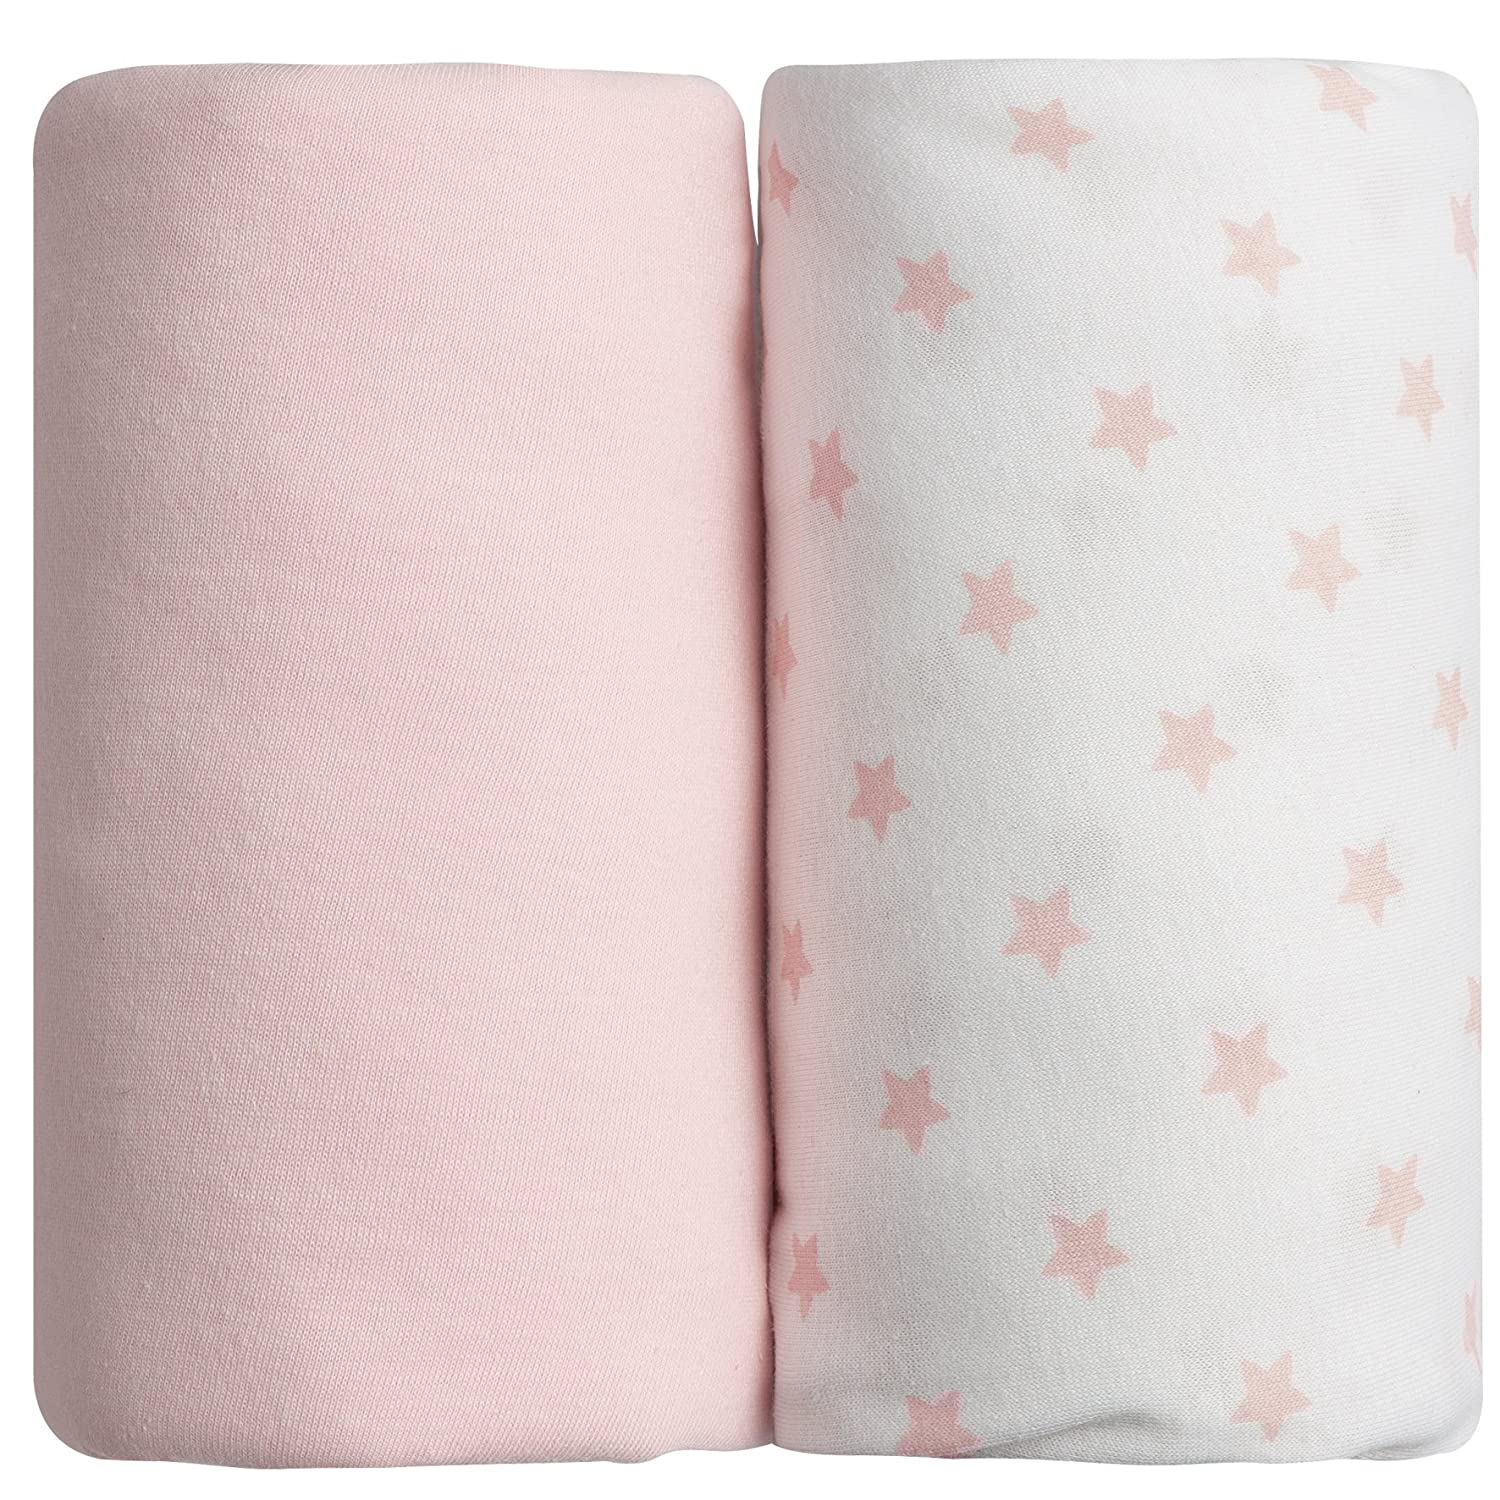 Babycalin Fitted Sheets (Set of 2 70 x 140 cm Pink BBC414806